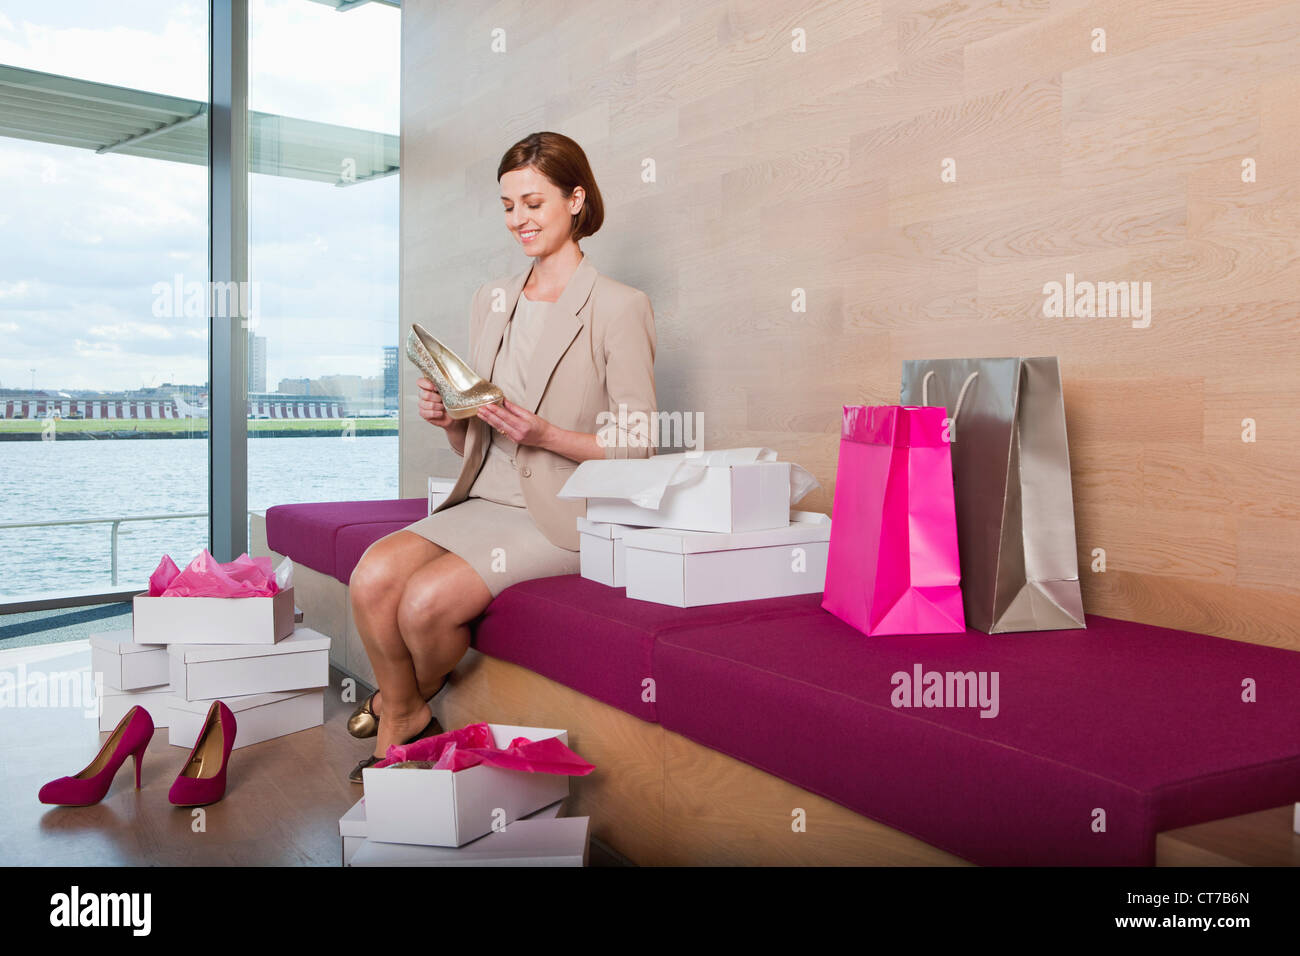 Woman trying on shoes in shoe shop Stock Photo